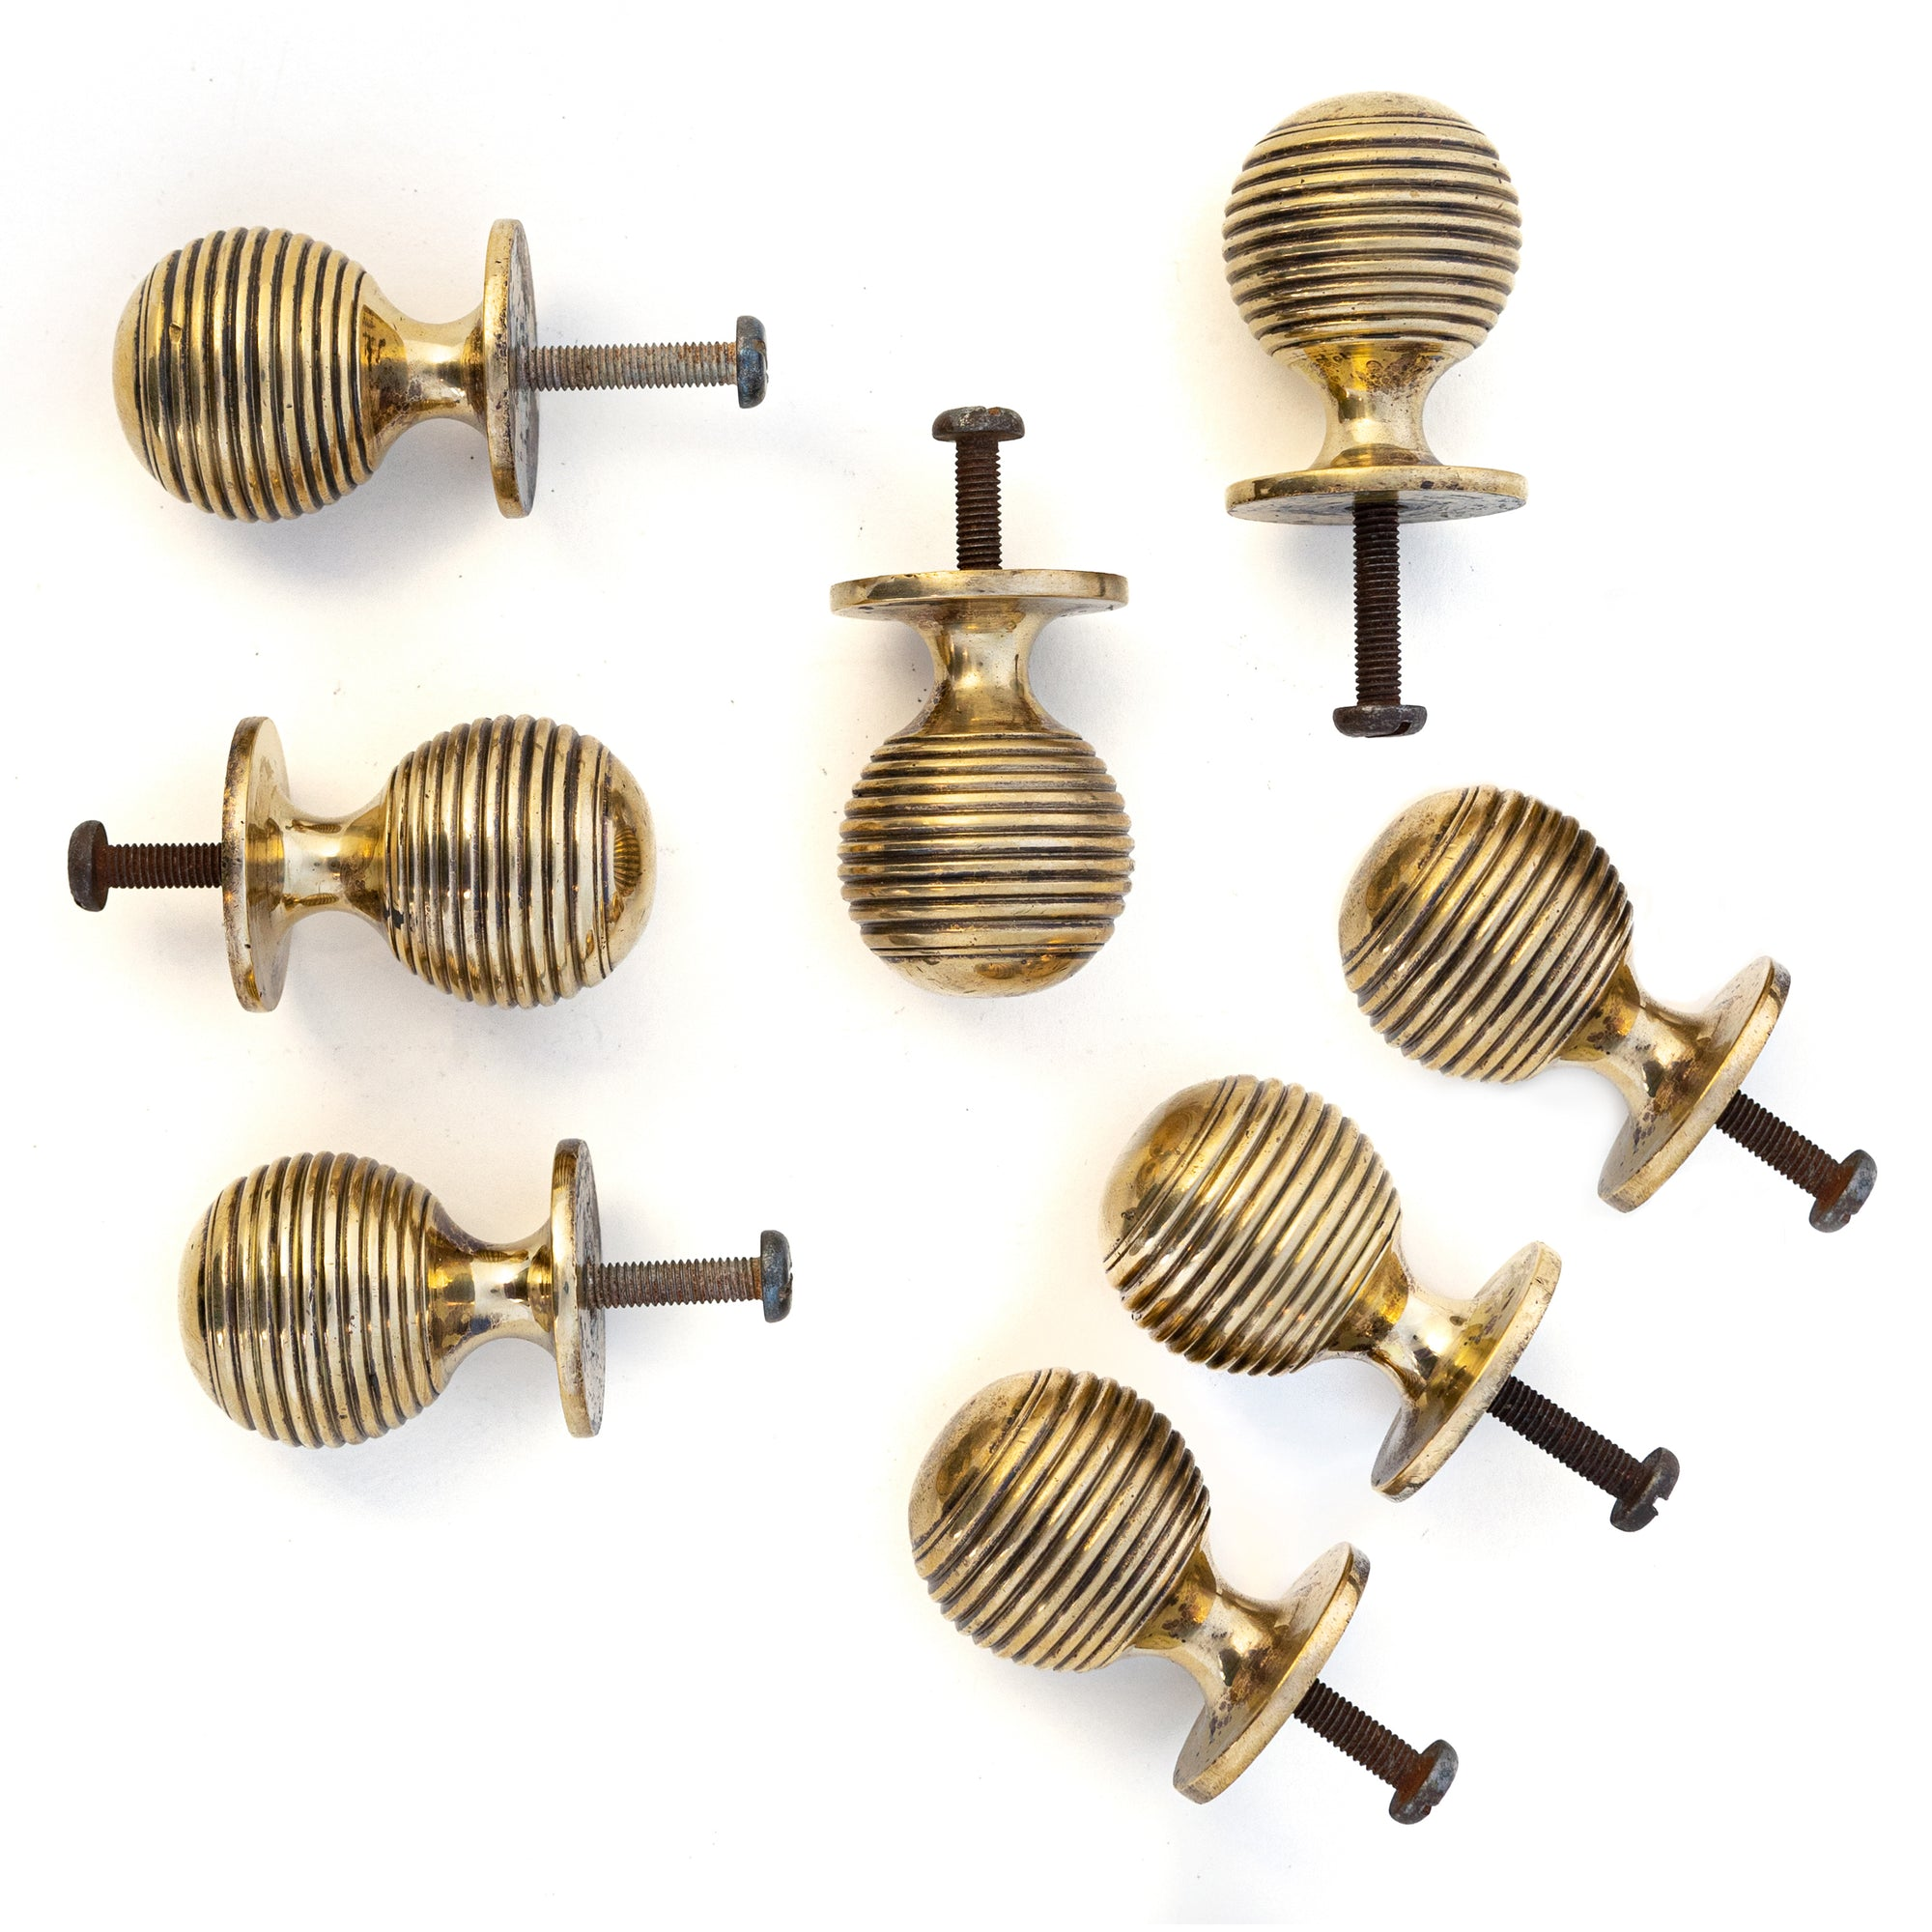 Solid Brass Beehive Cupboard Handles Set of 8 | The Architectural Forum